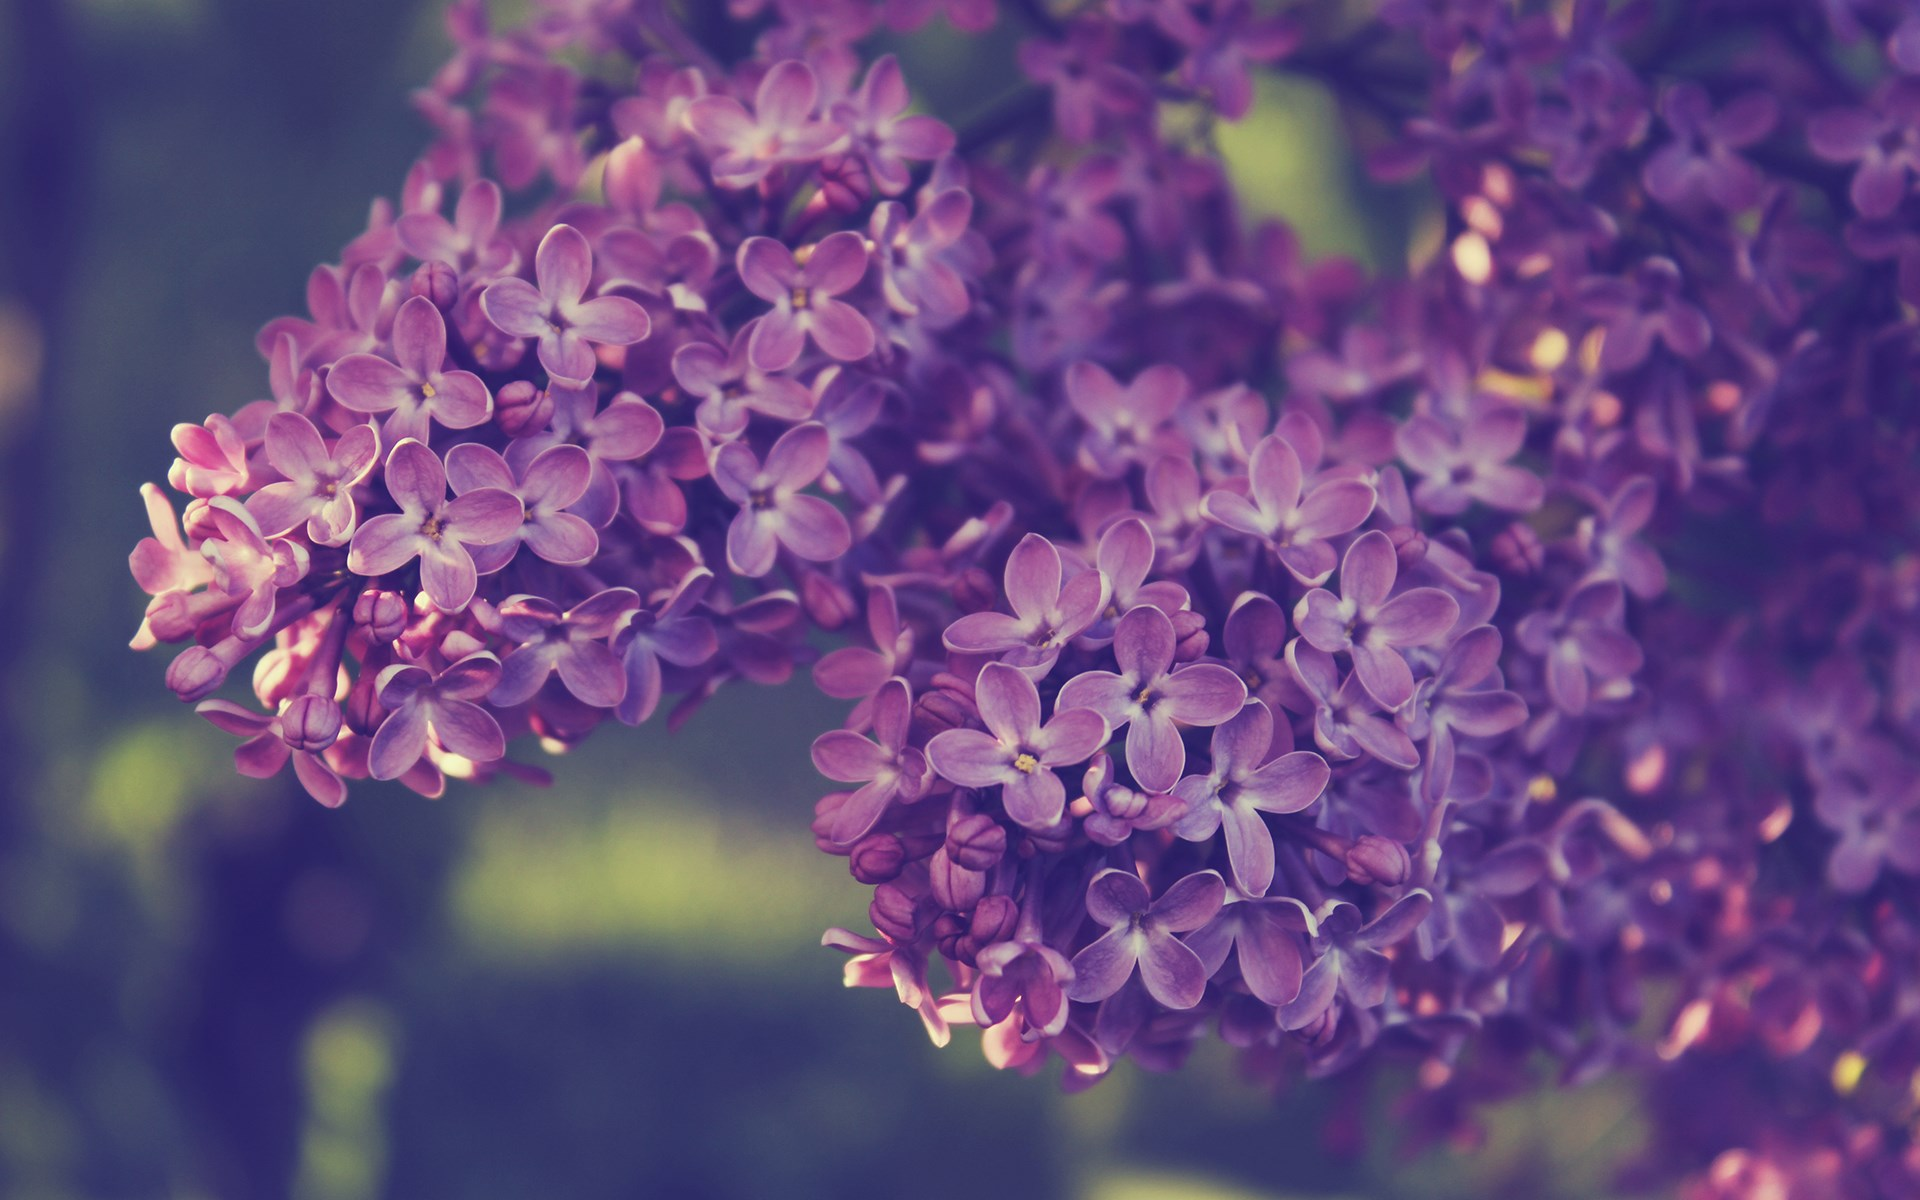 lilac flower wallpaper jpg - photo #23